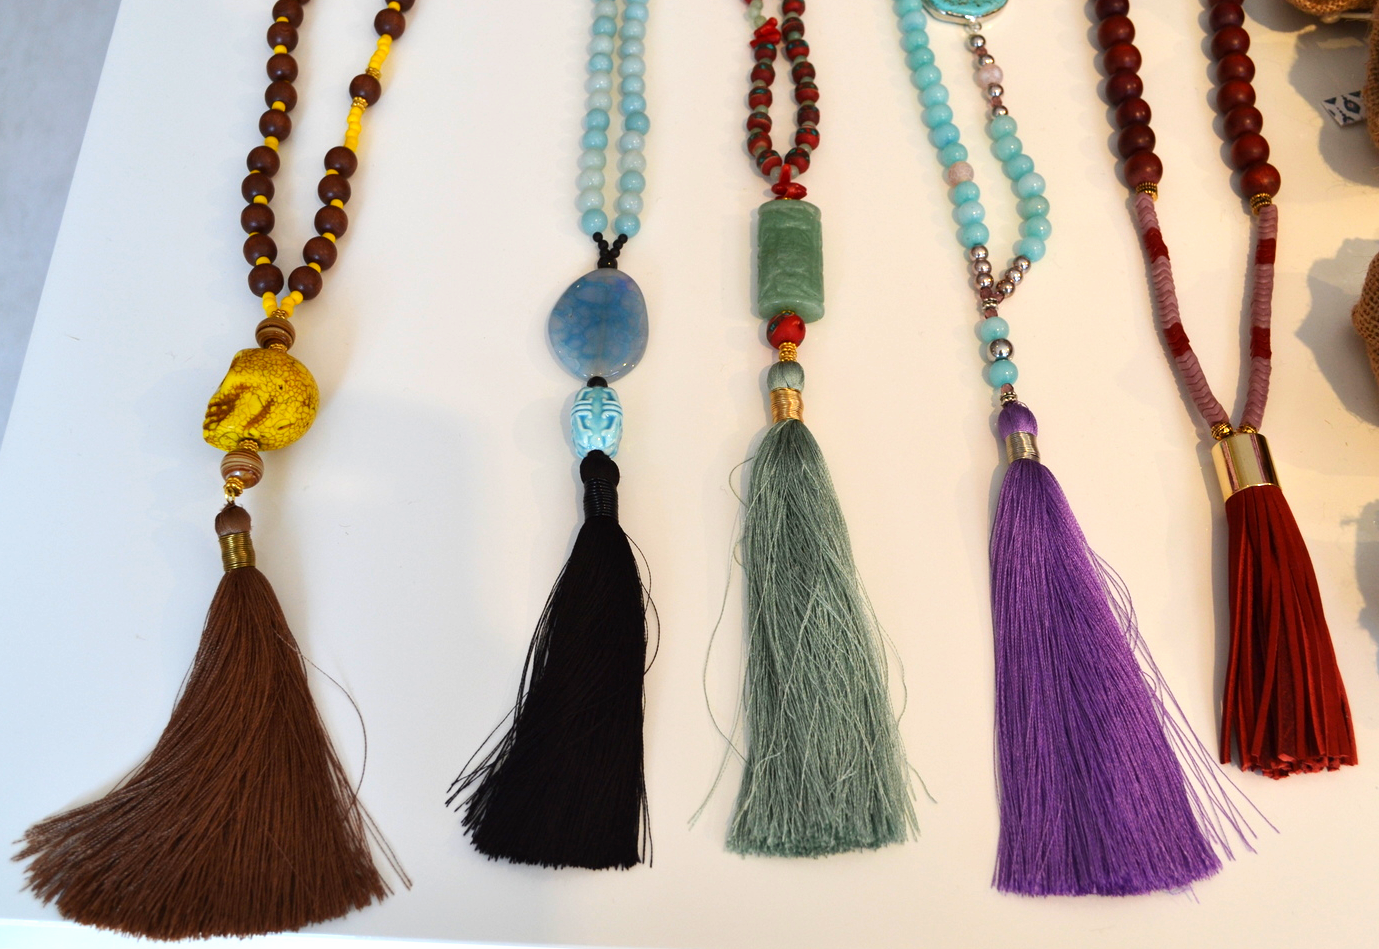 {Some tassel necklaces spotted in ACK}